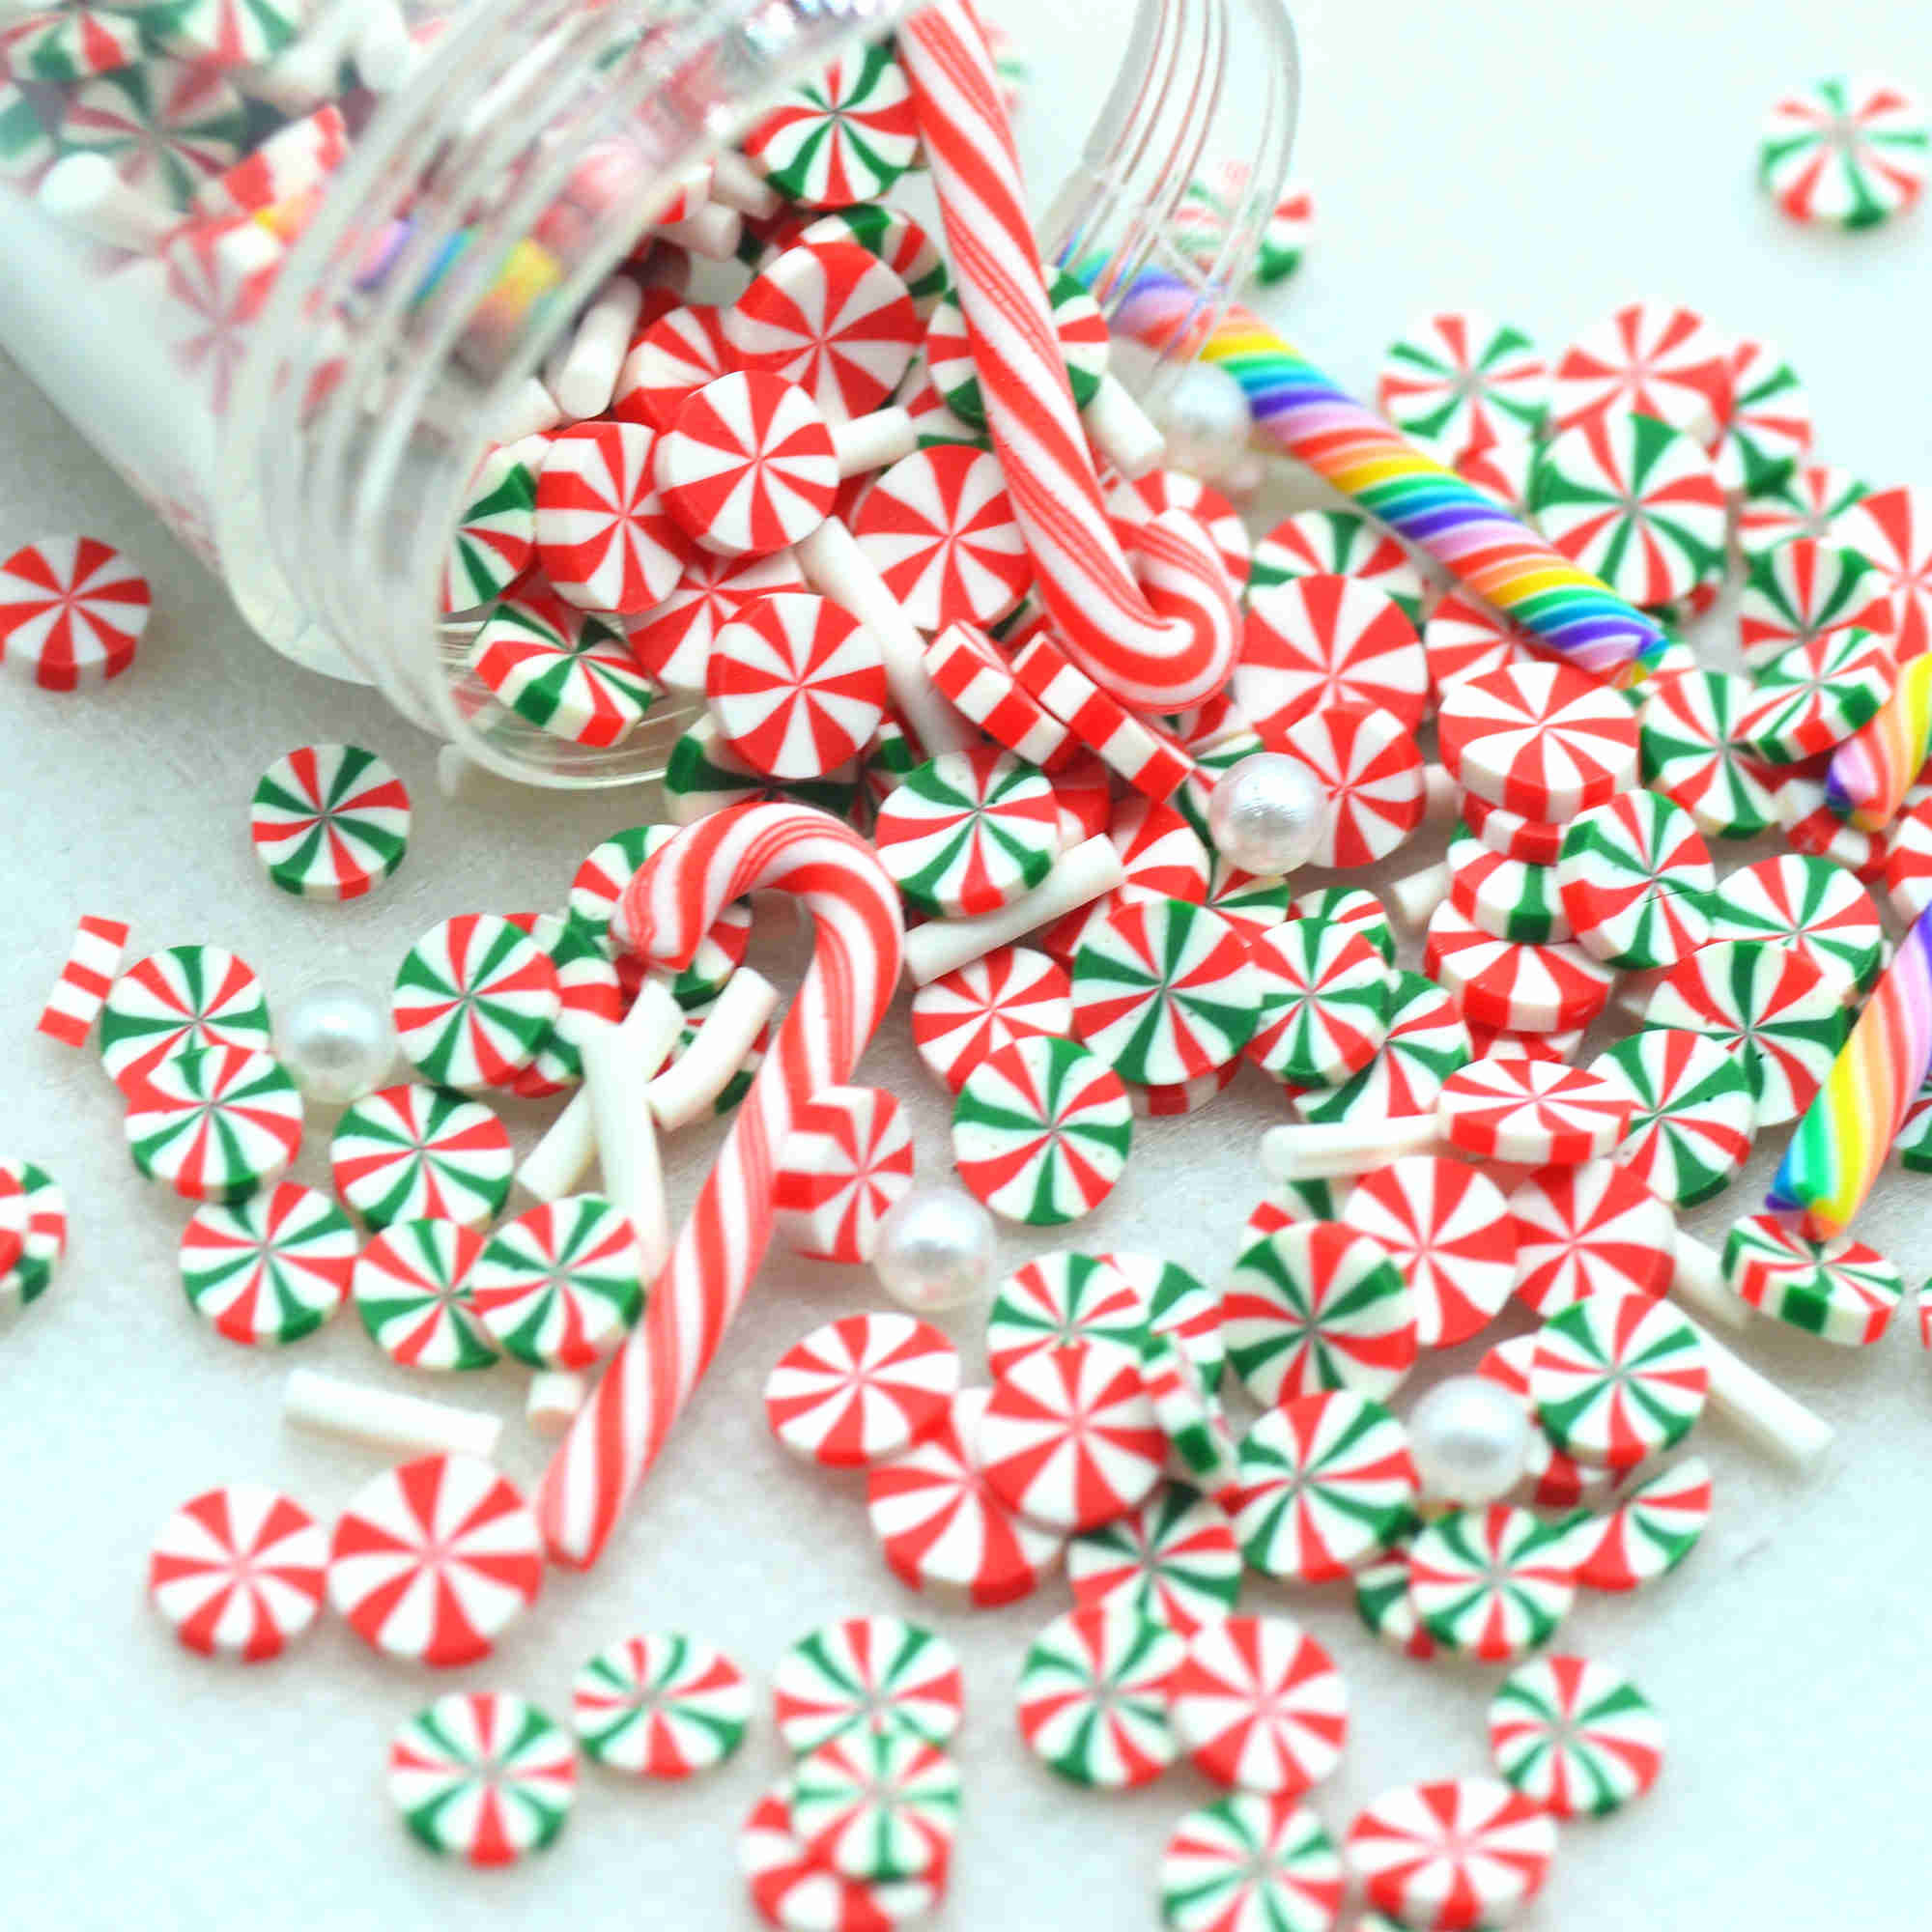 20g Christmas Color Decoration Sprinkles,Polymer Clay Mixed Party Decoration Confetti-Slime Playing Supplements-Not Edible